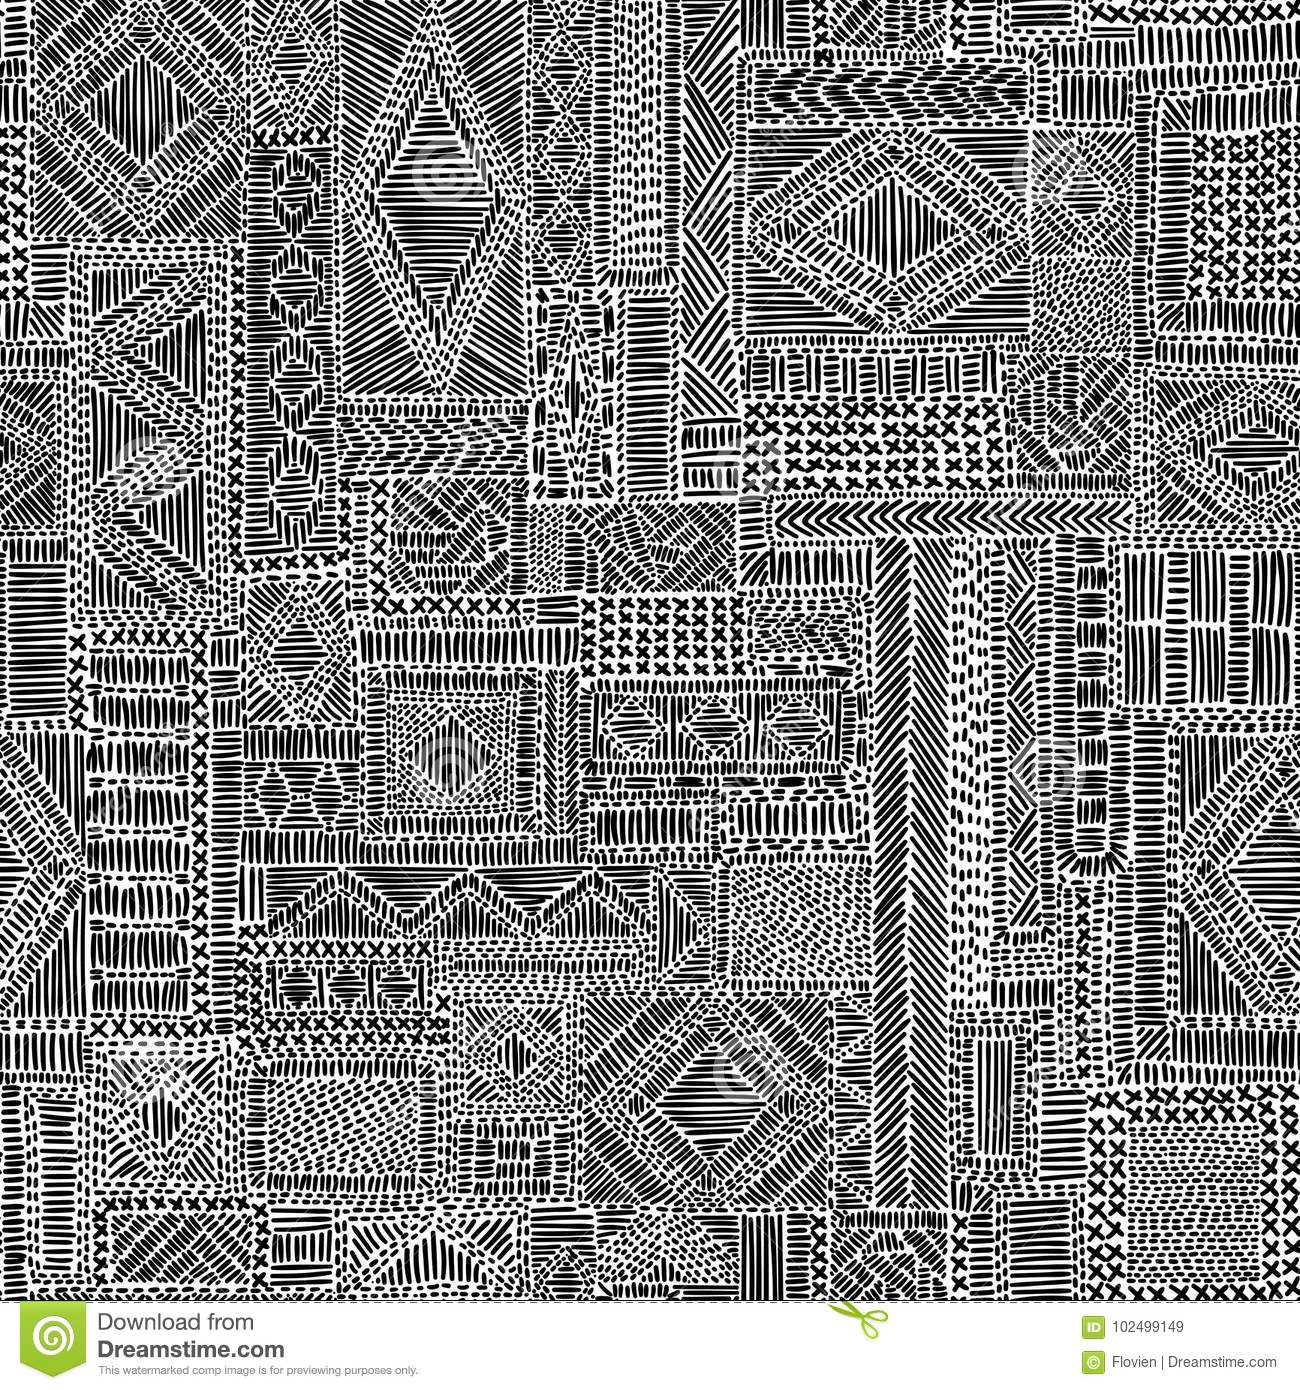 Embroidered seamless pattern. Black and white complex ornament.